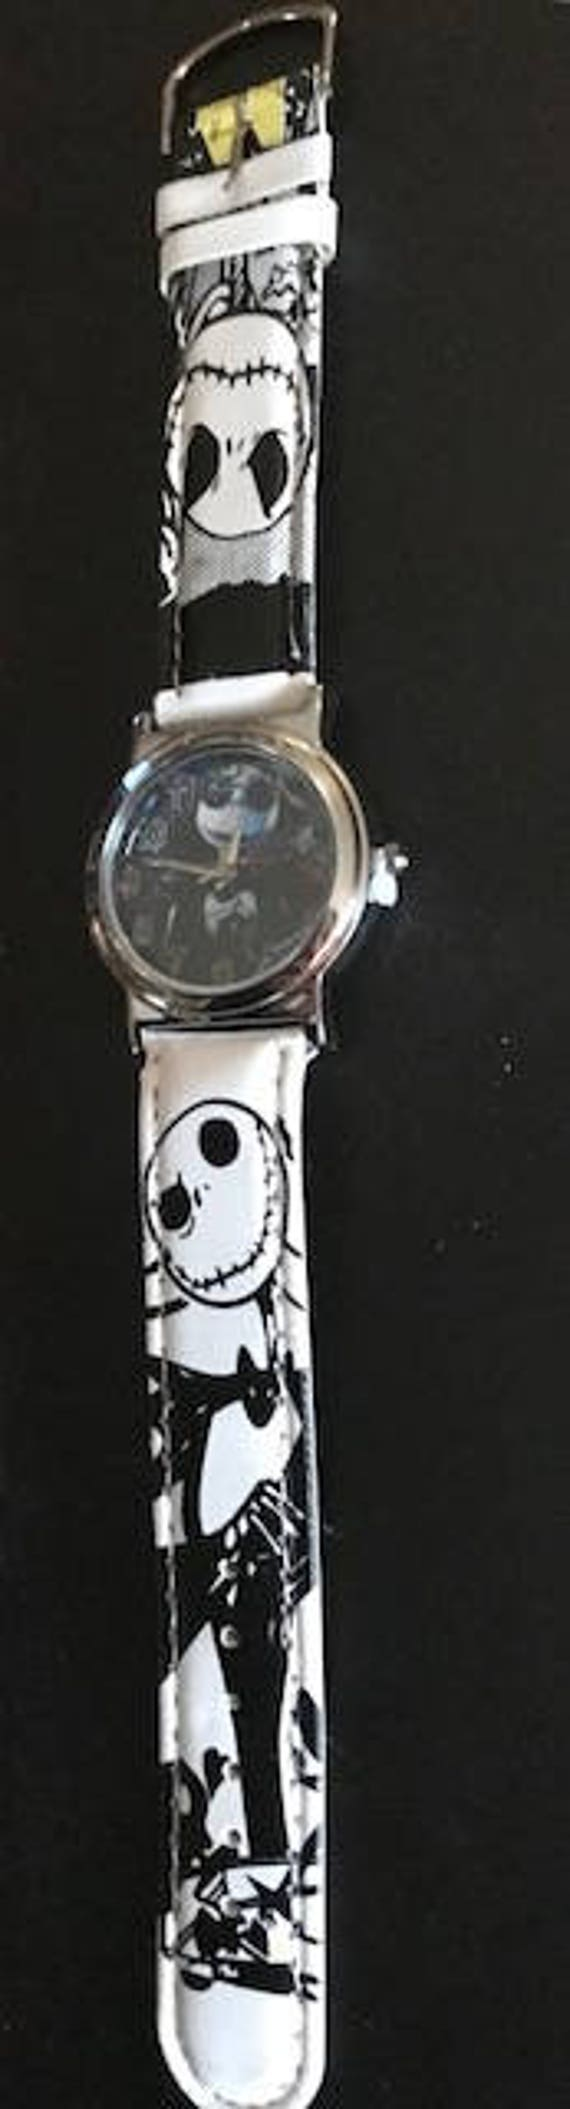 The Nightmare Before Christmas Jack Skellington Sandy Claws | Etsy